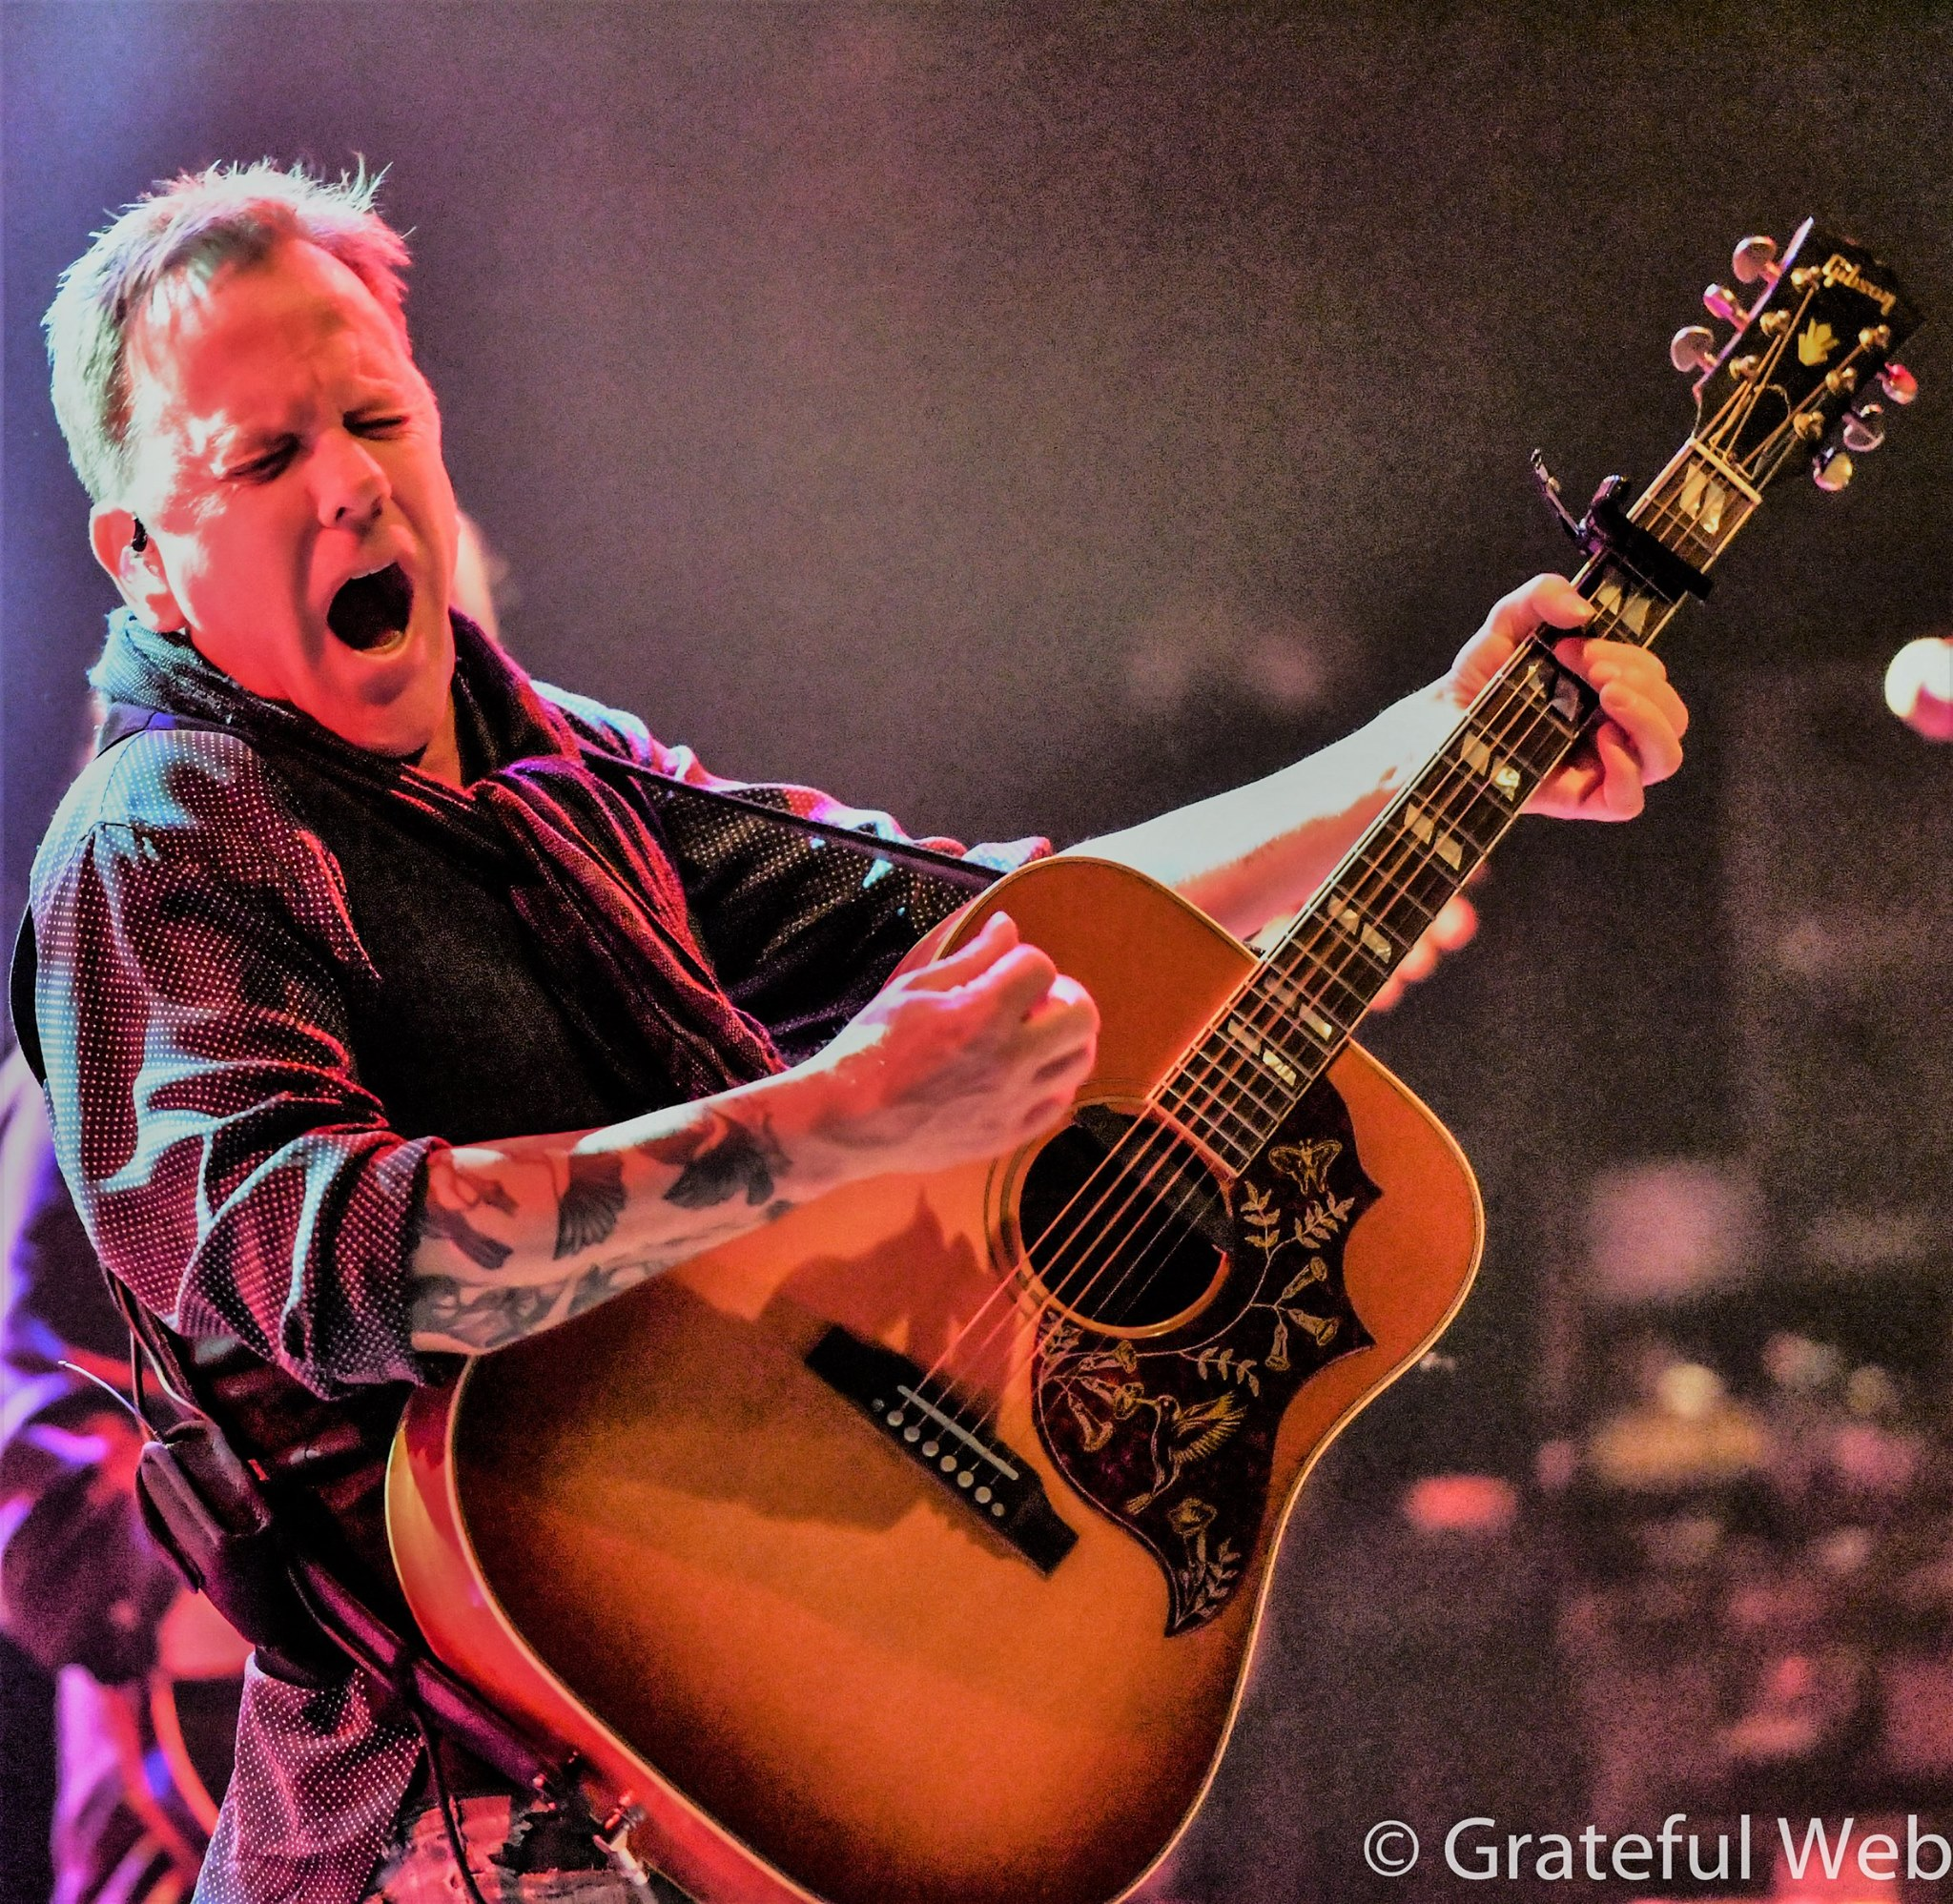 Kiefer Sutherland Announces U.S. Tour Dates